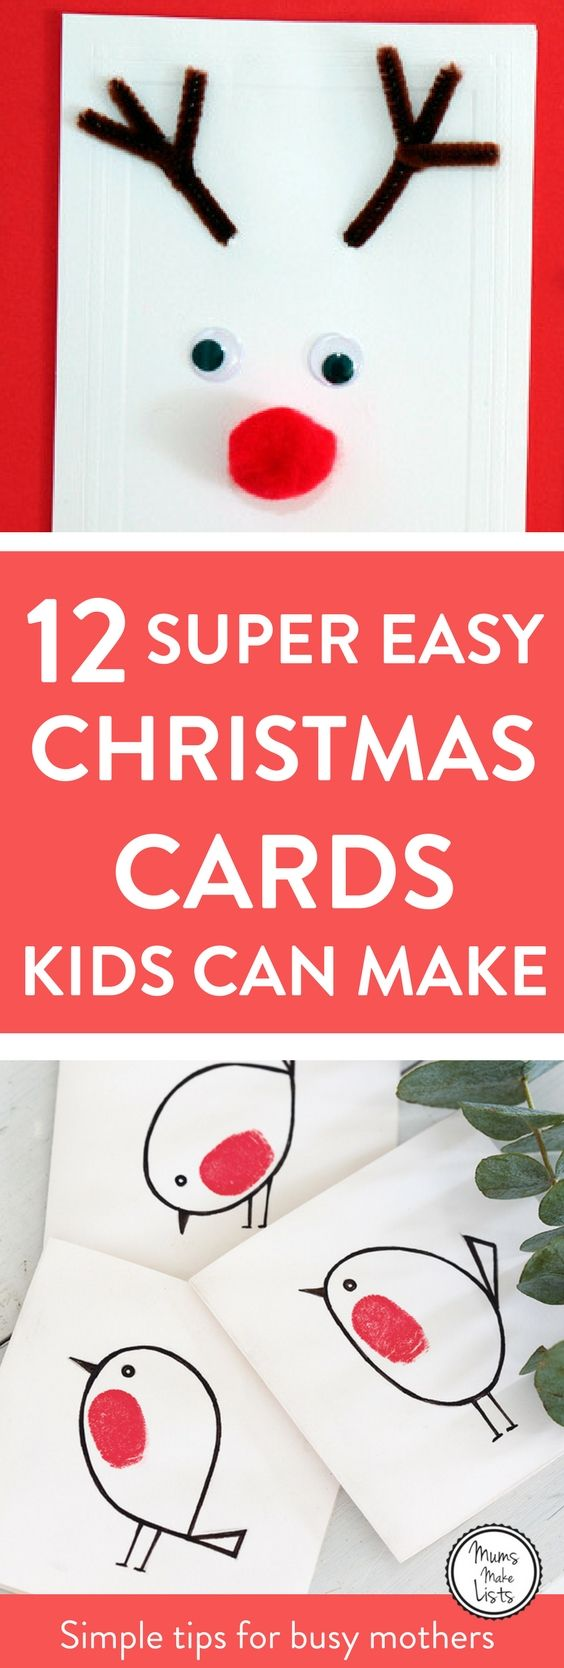 Christmas cards kids can make. 12 easy homemade Christmas card ideas for kids from preschool through school age. #Christmas2017 #ChristmasCards #ChristmasCards2017 #ChristmasCardsEasy